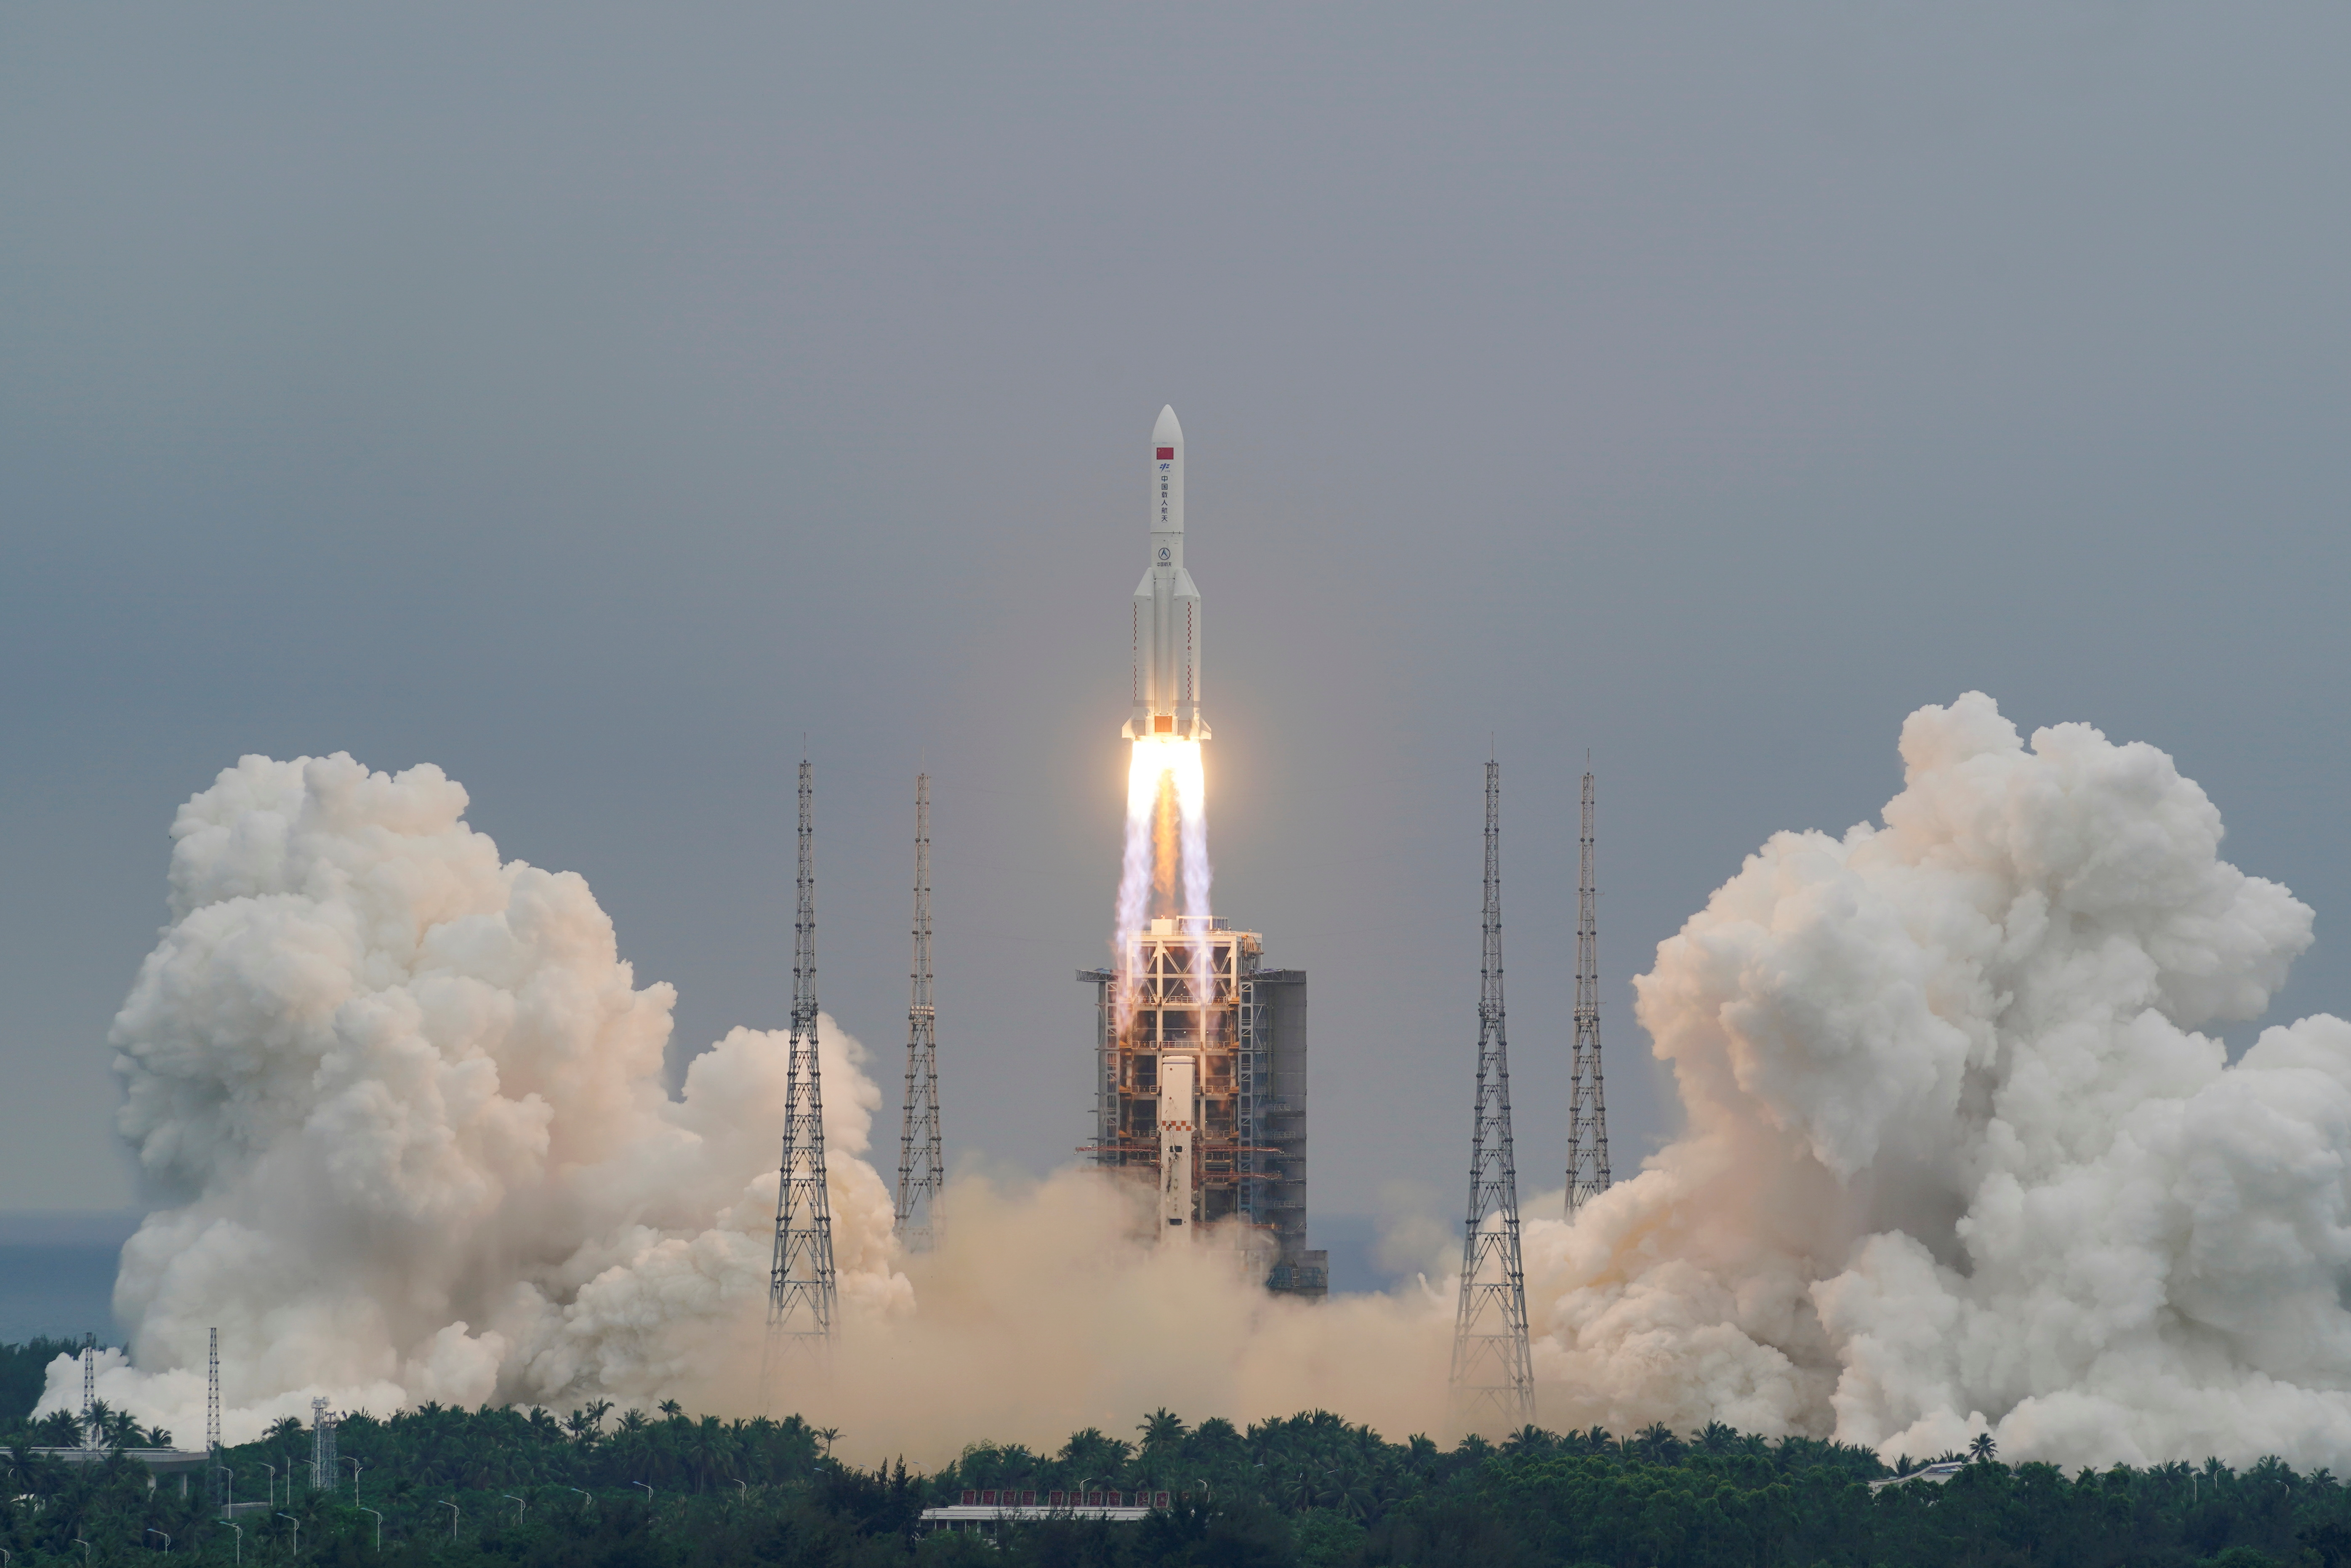 The Long March-5B Y2 rocket, carrying the core module of China's space station Tianhe, takes off from Wenchang Space Launch Center in Hainan province, China April 29, 2021. China Daily via REUTERS  ATTENTION EDITORS - THIS IMAGE WAS PROVIDED BY A THIRD PARTY. CHINA OUT./File Photo